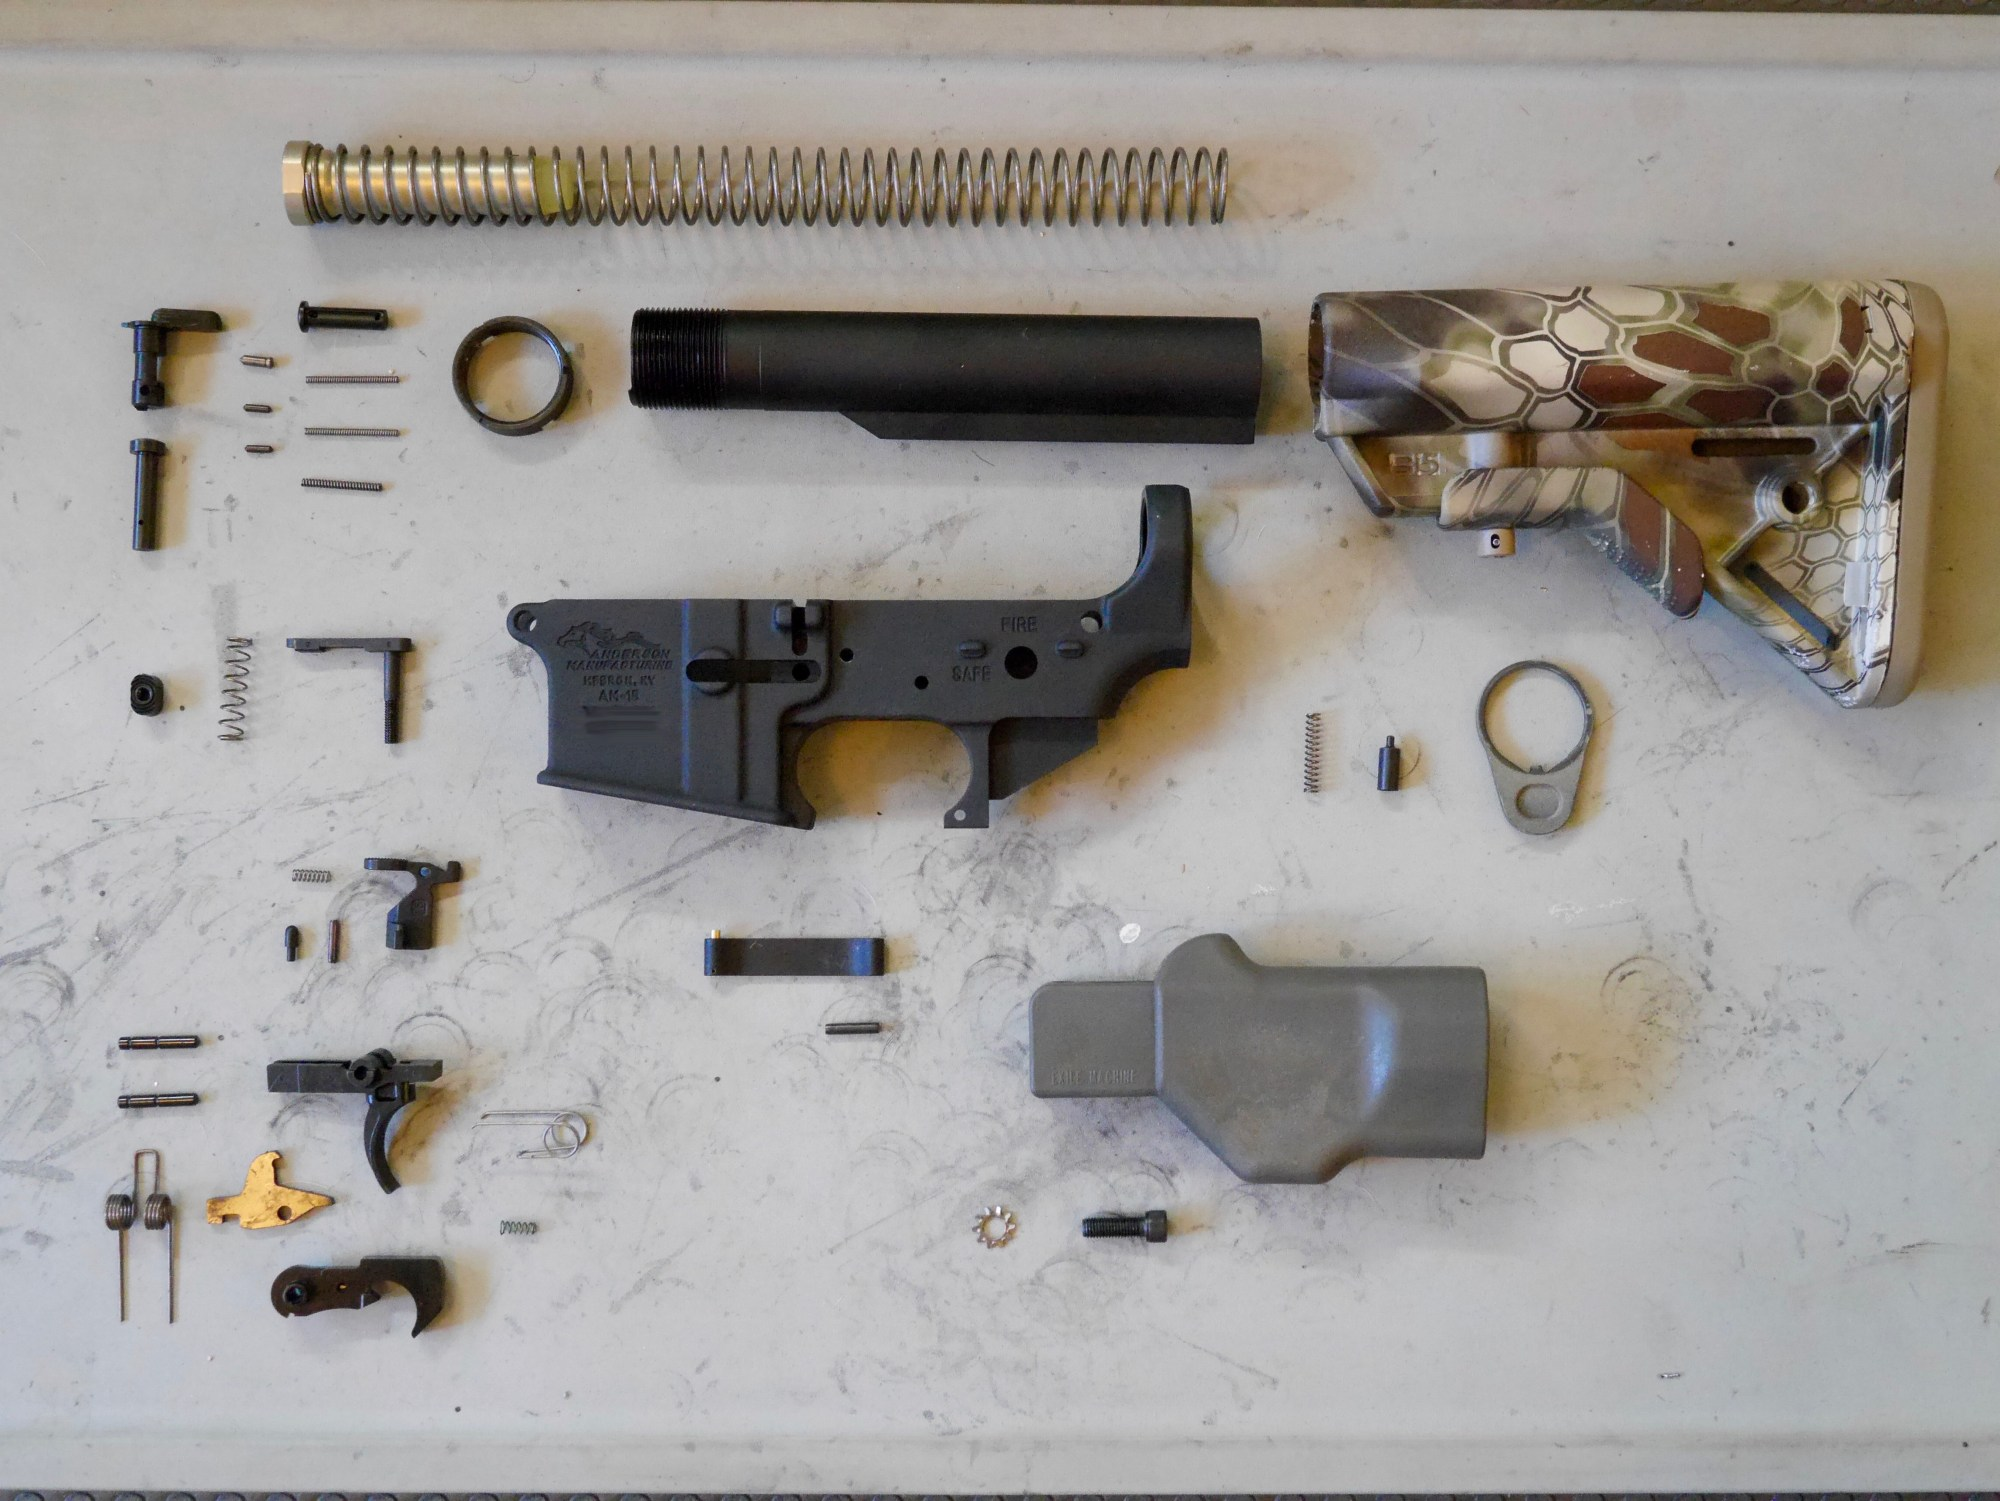 hight resolution of how to build an ar 15 lower receiver ultimate visual guide pew pew tactical